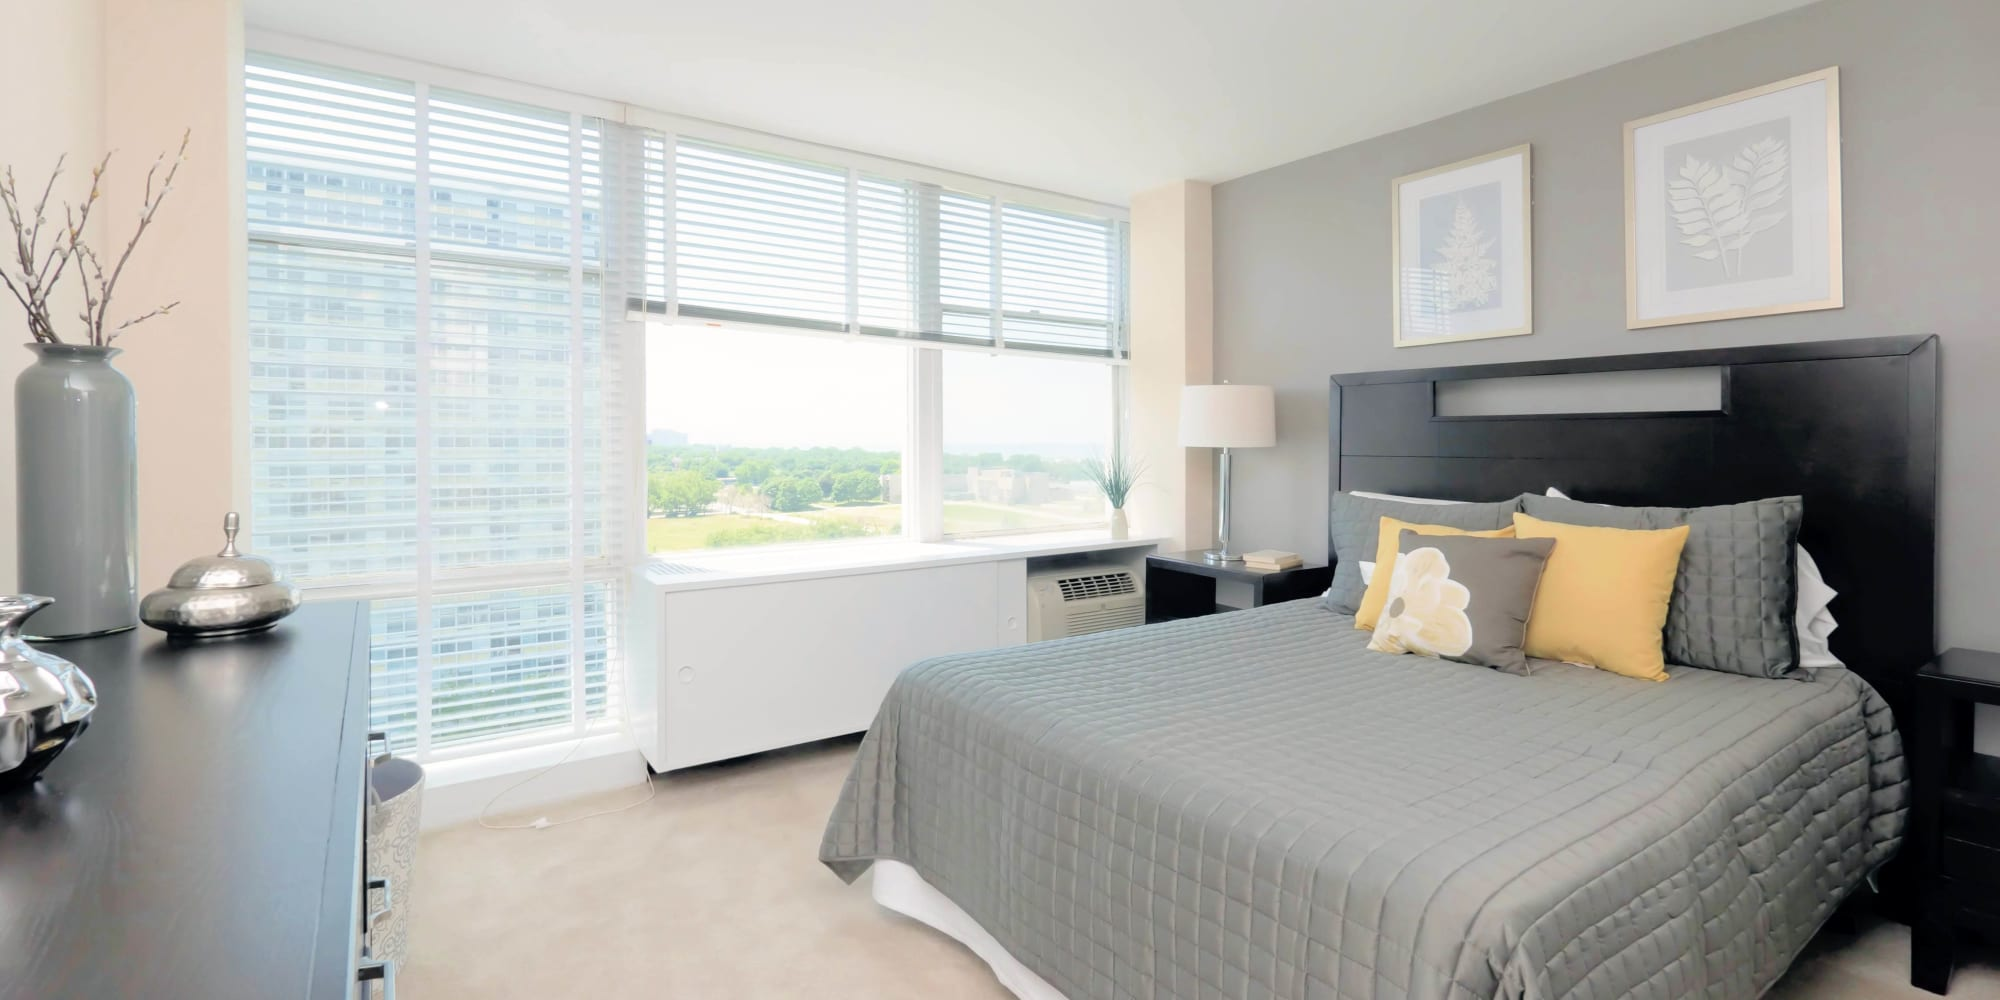 Luxury apartments in Chicago, Illinois at Prairie Shores